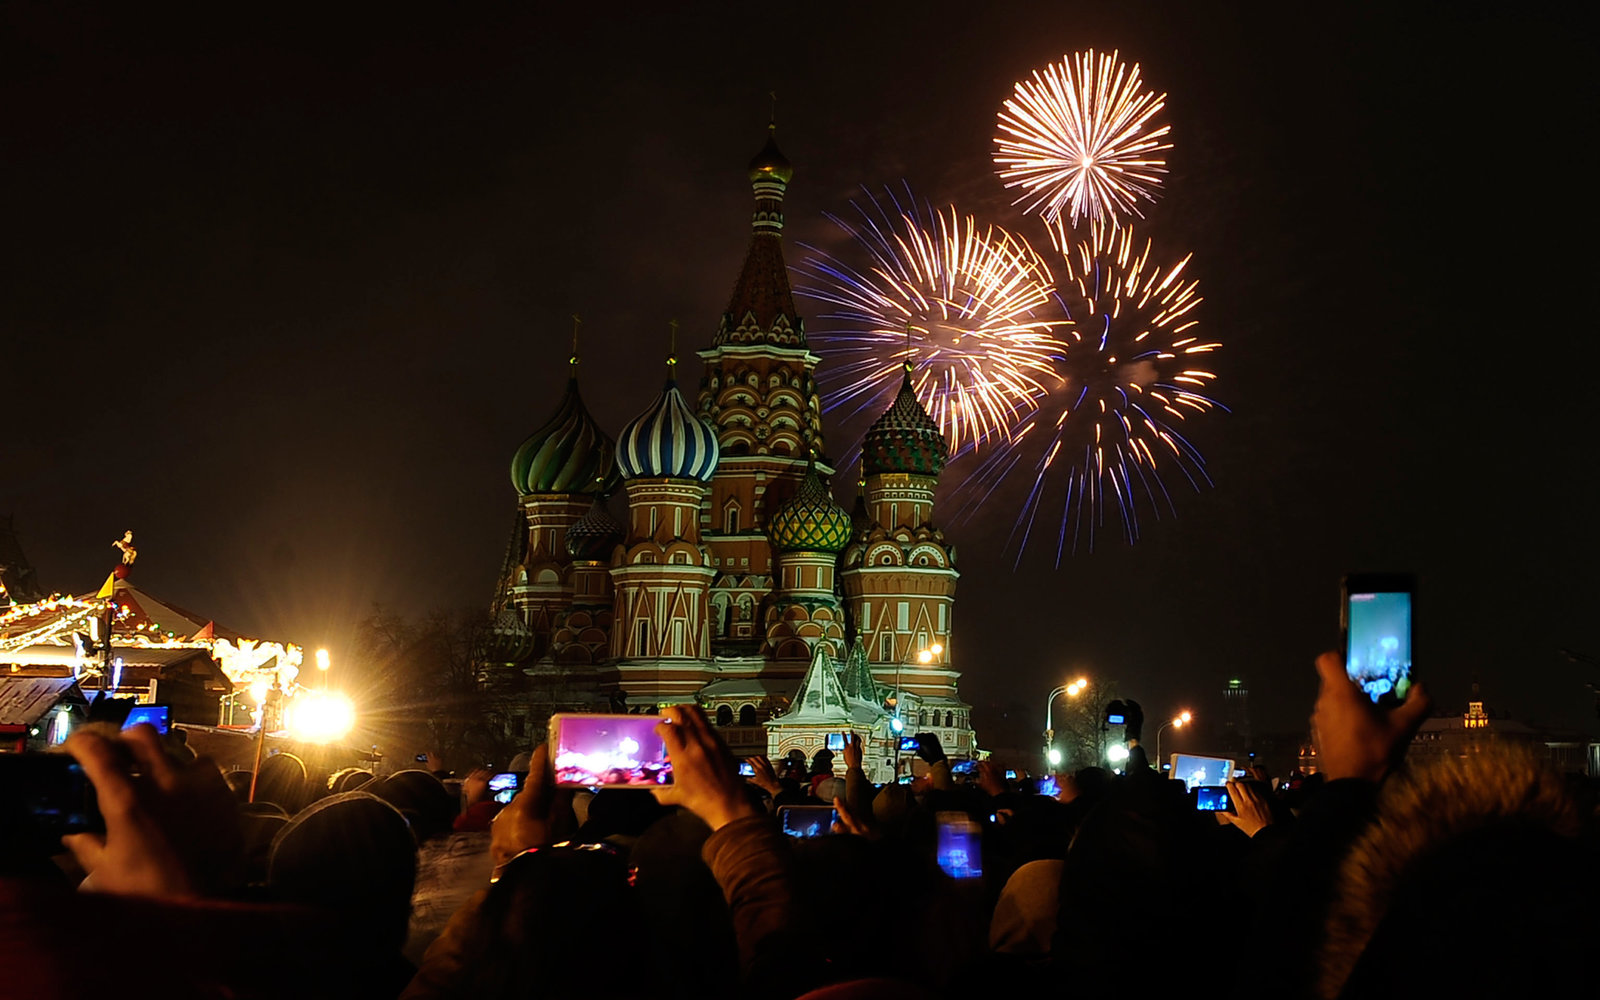 Moscow Russia New Year's Eve